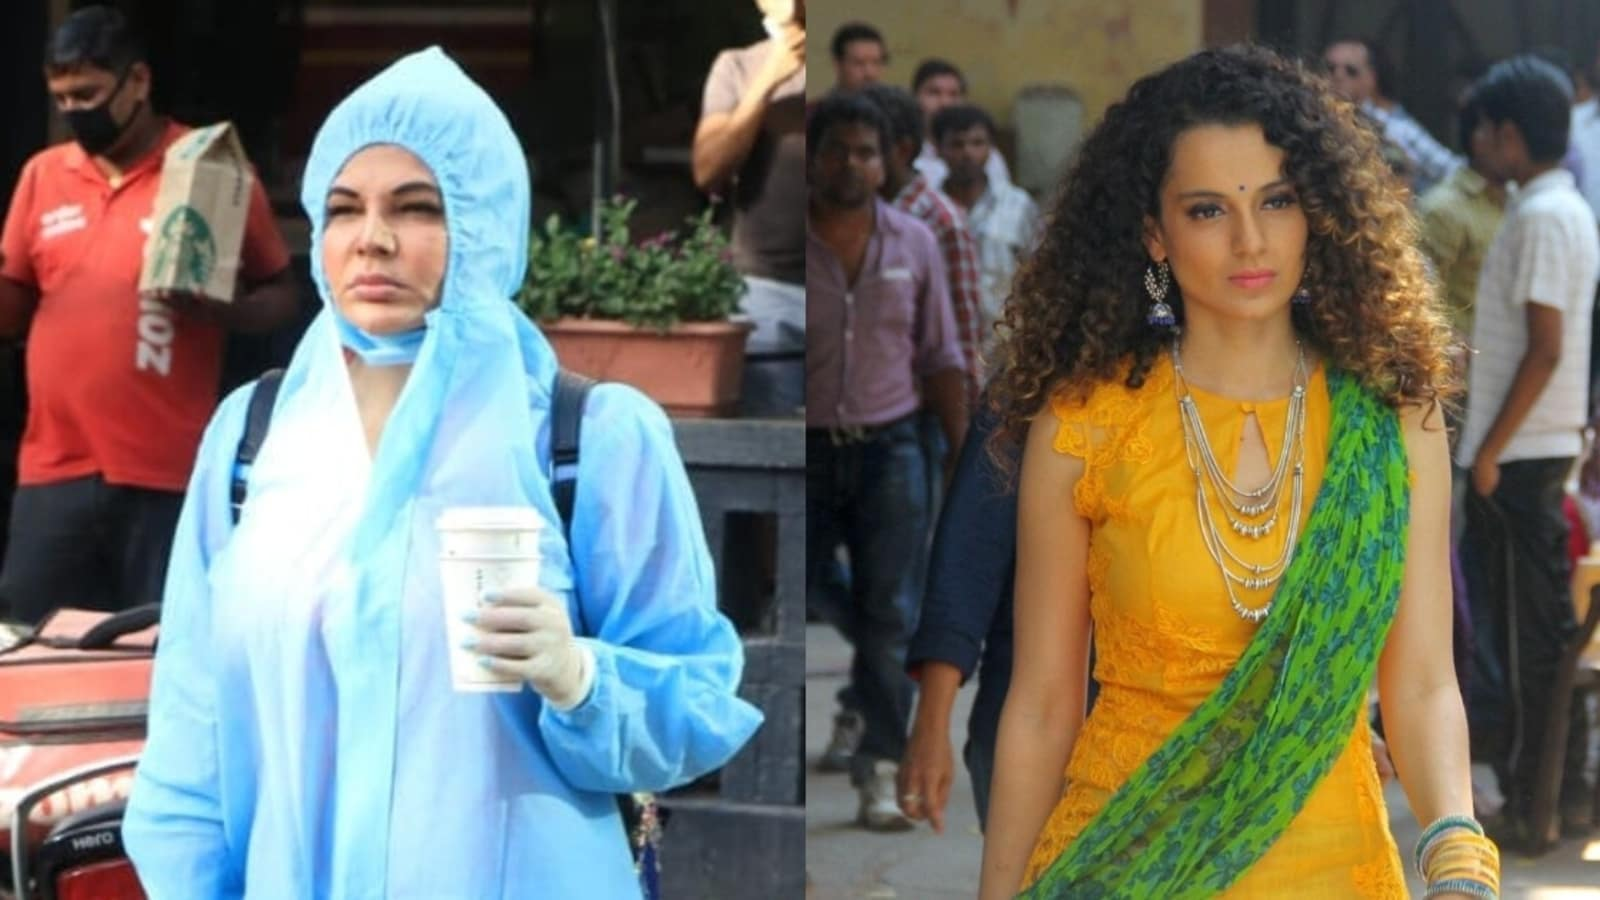 Rakhi Sawant asks Kangana Ranaut to help India in procuring oxygen: 'You have crores of rupees' - Hindustan Times